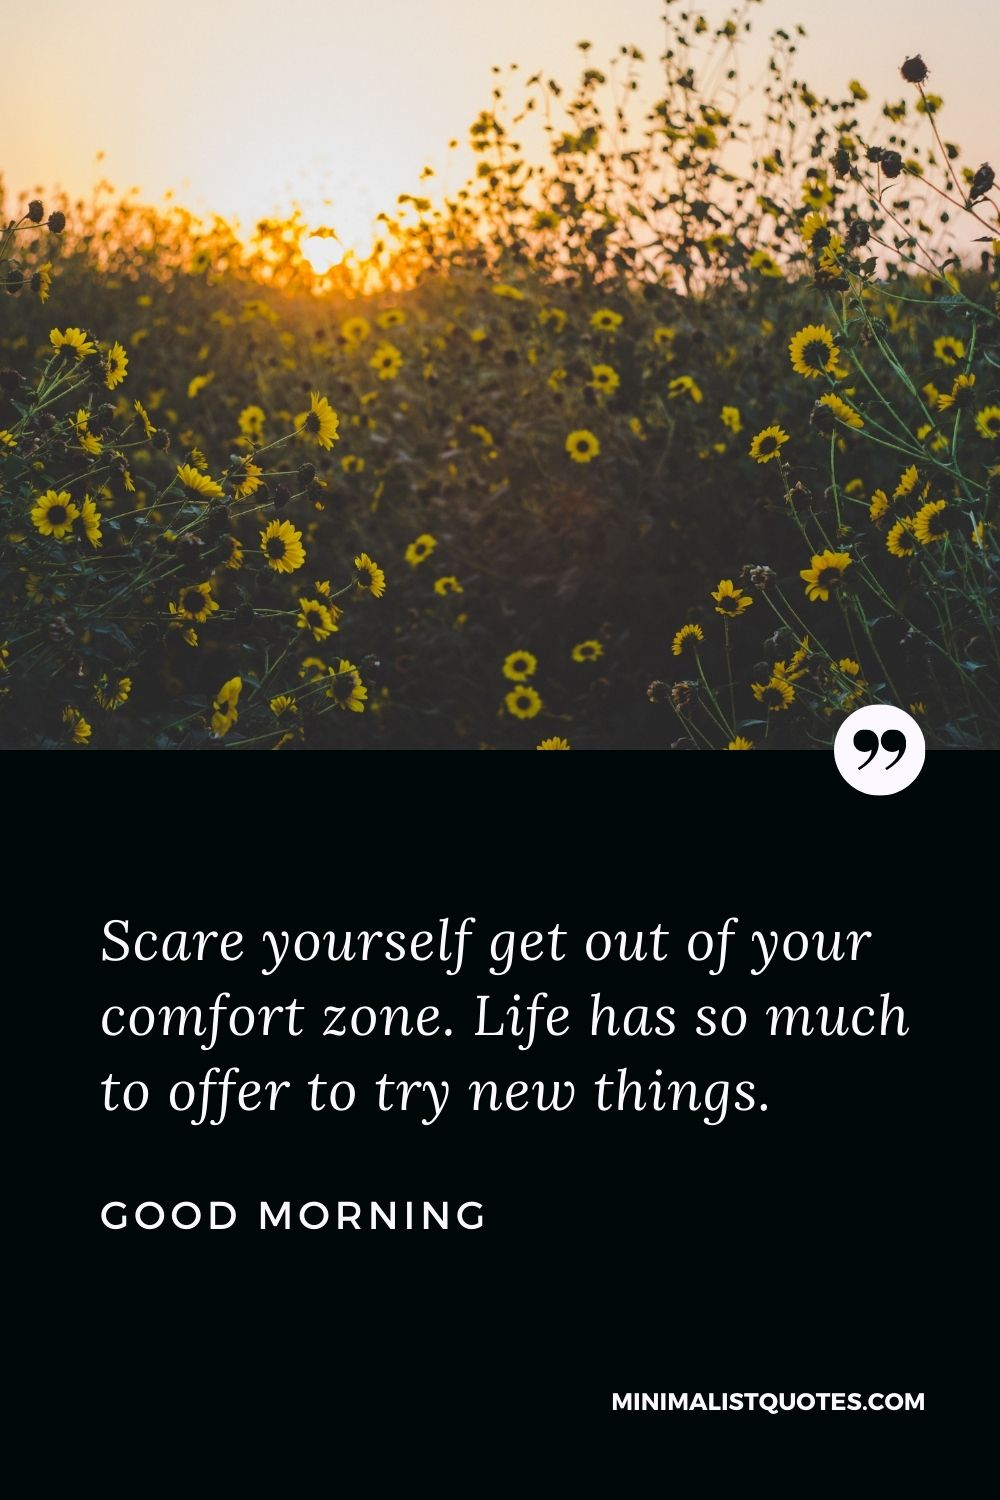 Good Morning Wish & Message: Scare yourself get out of your comfort zone. Life has so much to offer to try new things.